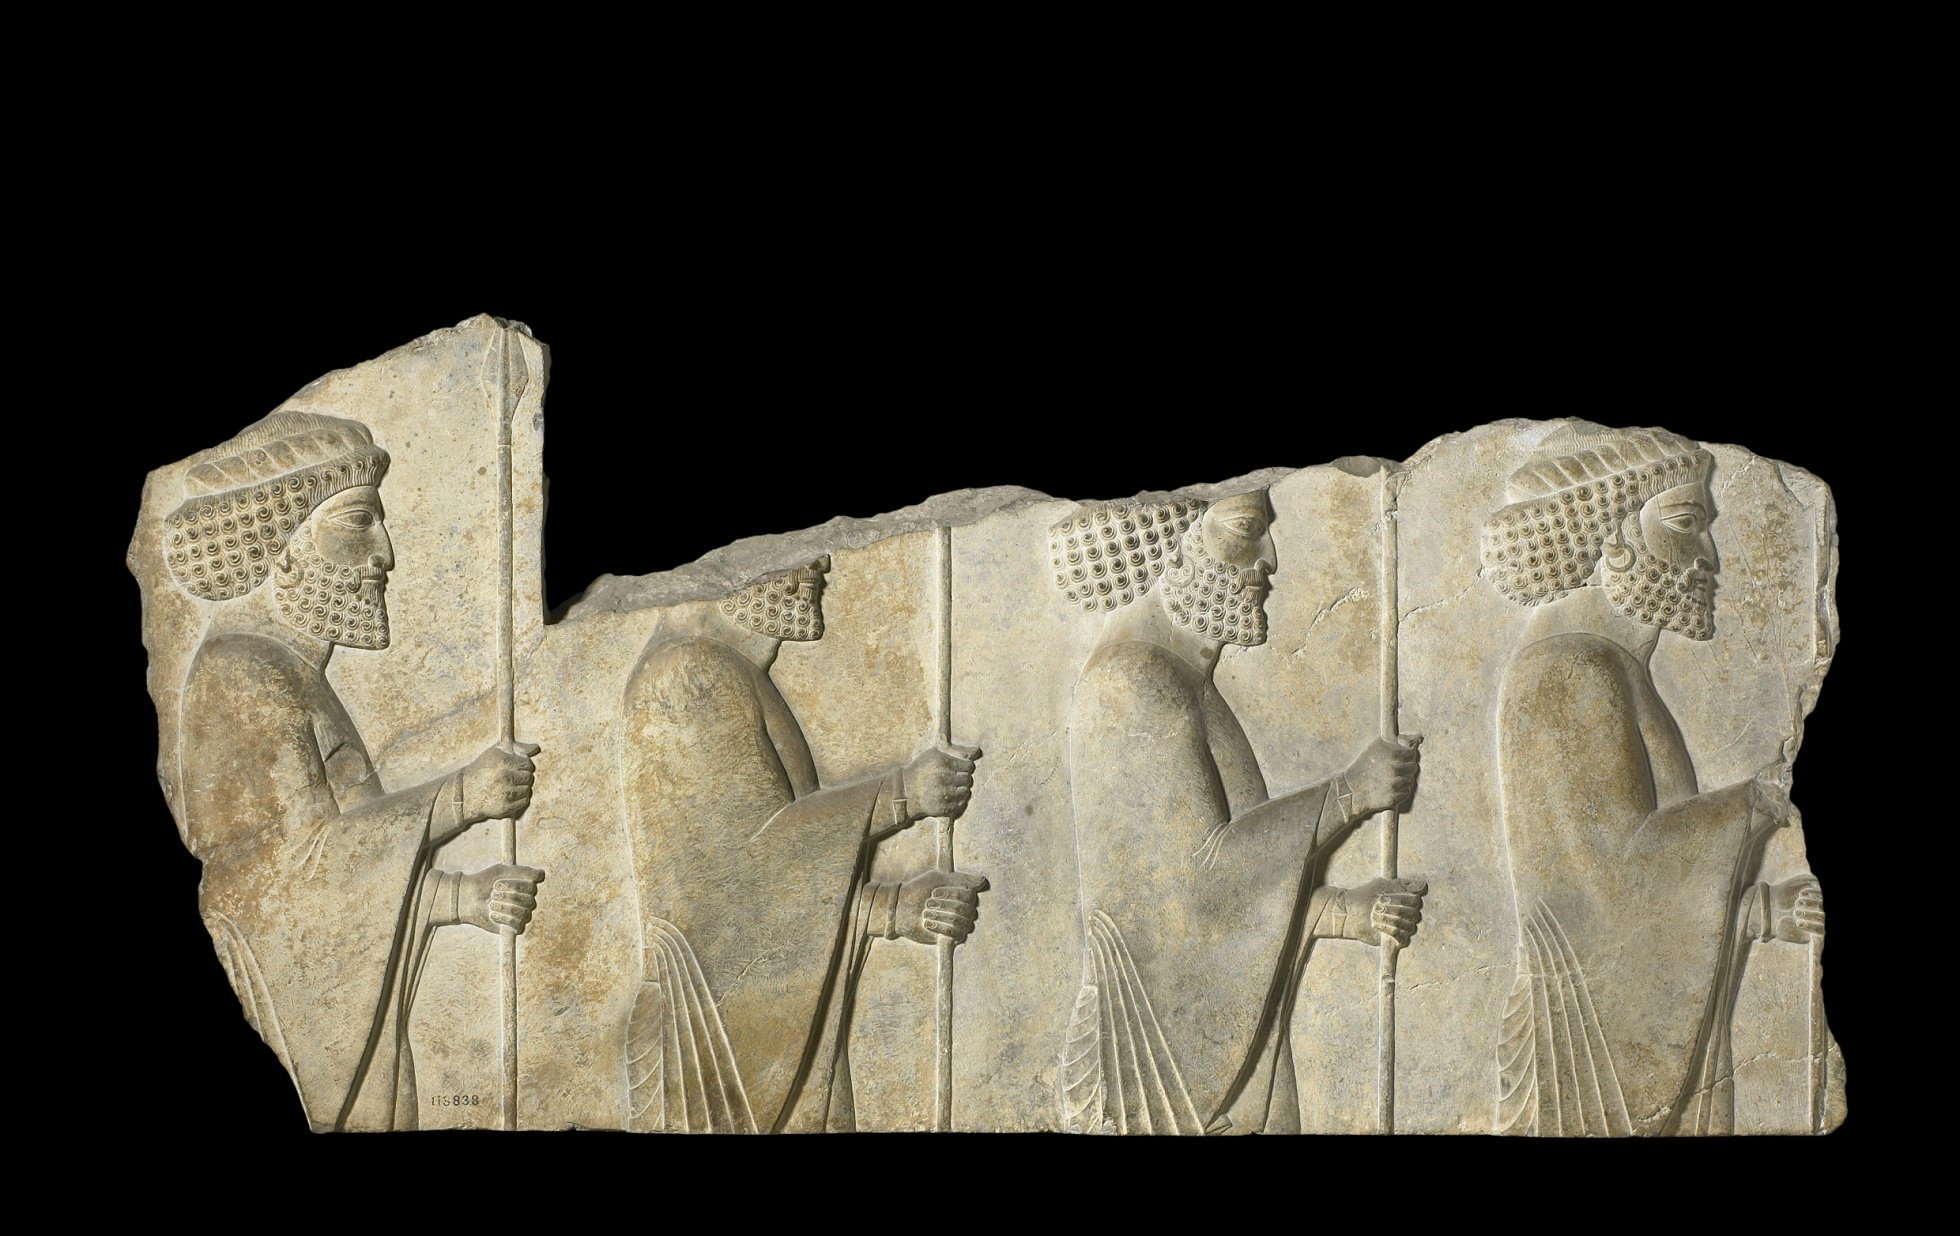 Fragment shows four guardsmen with spears, advancing right, wearing Persian dress with bracelets and ear-rings